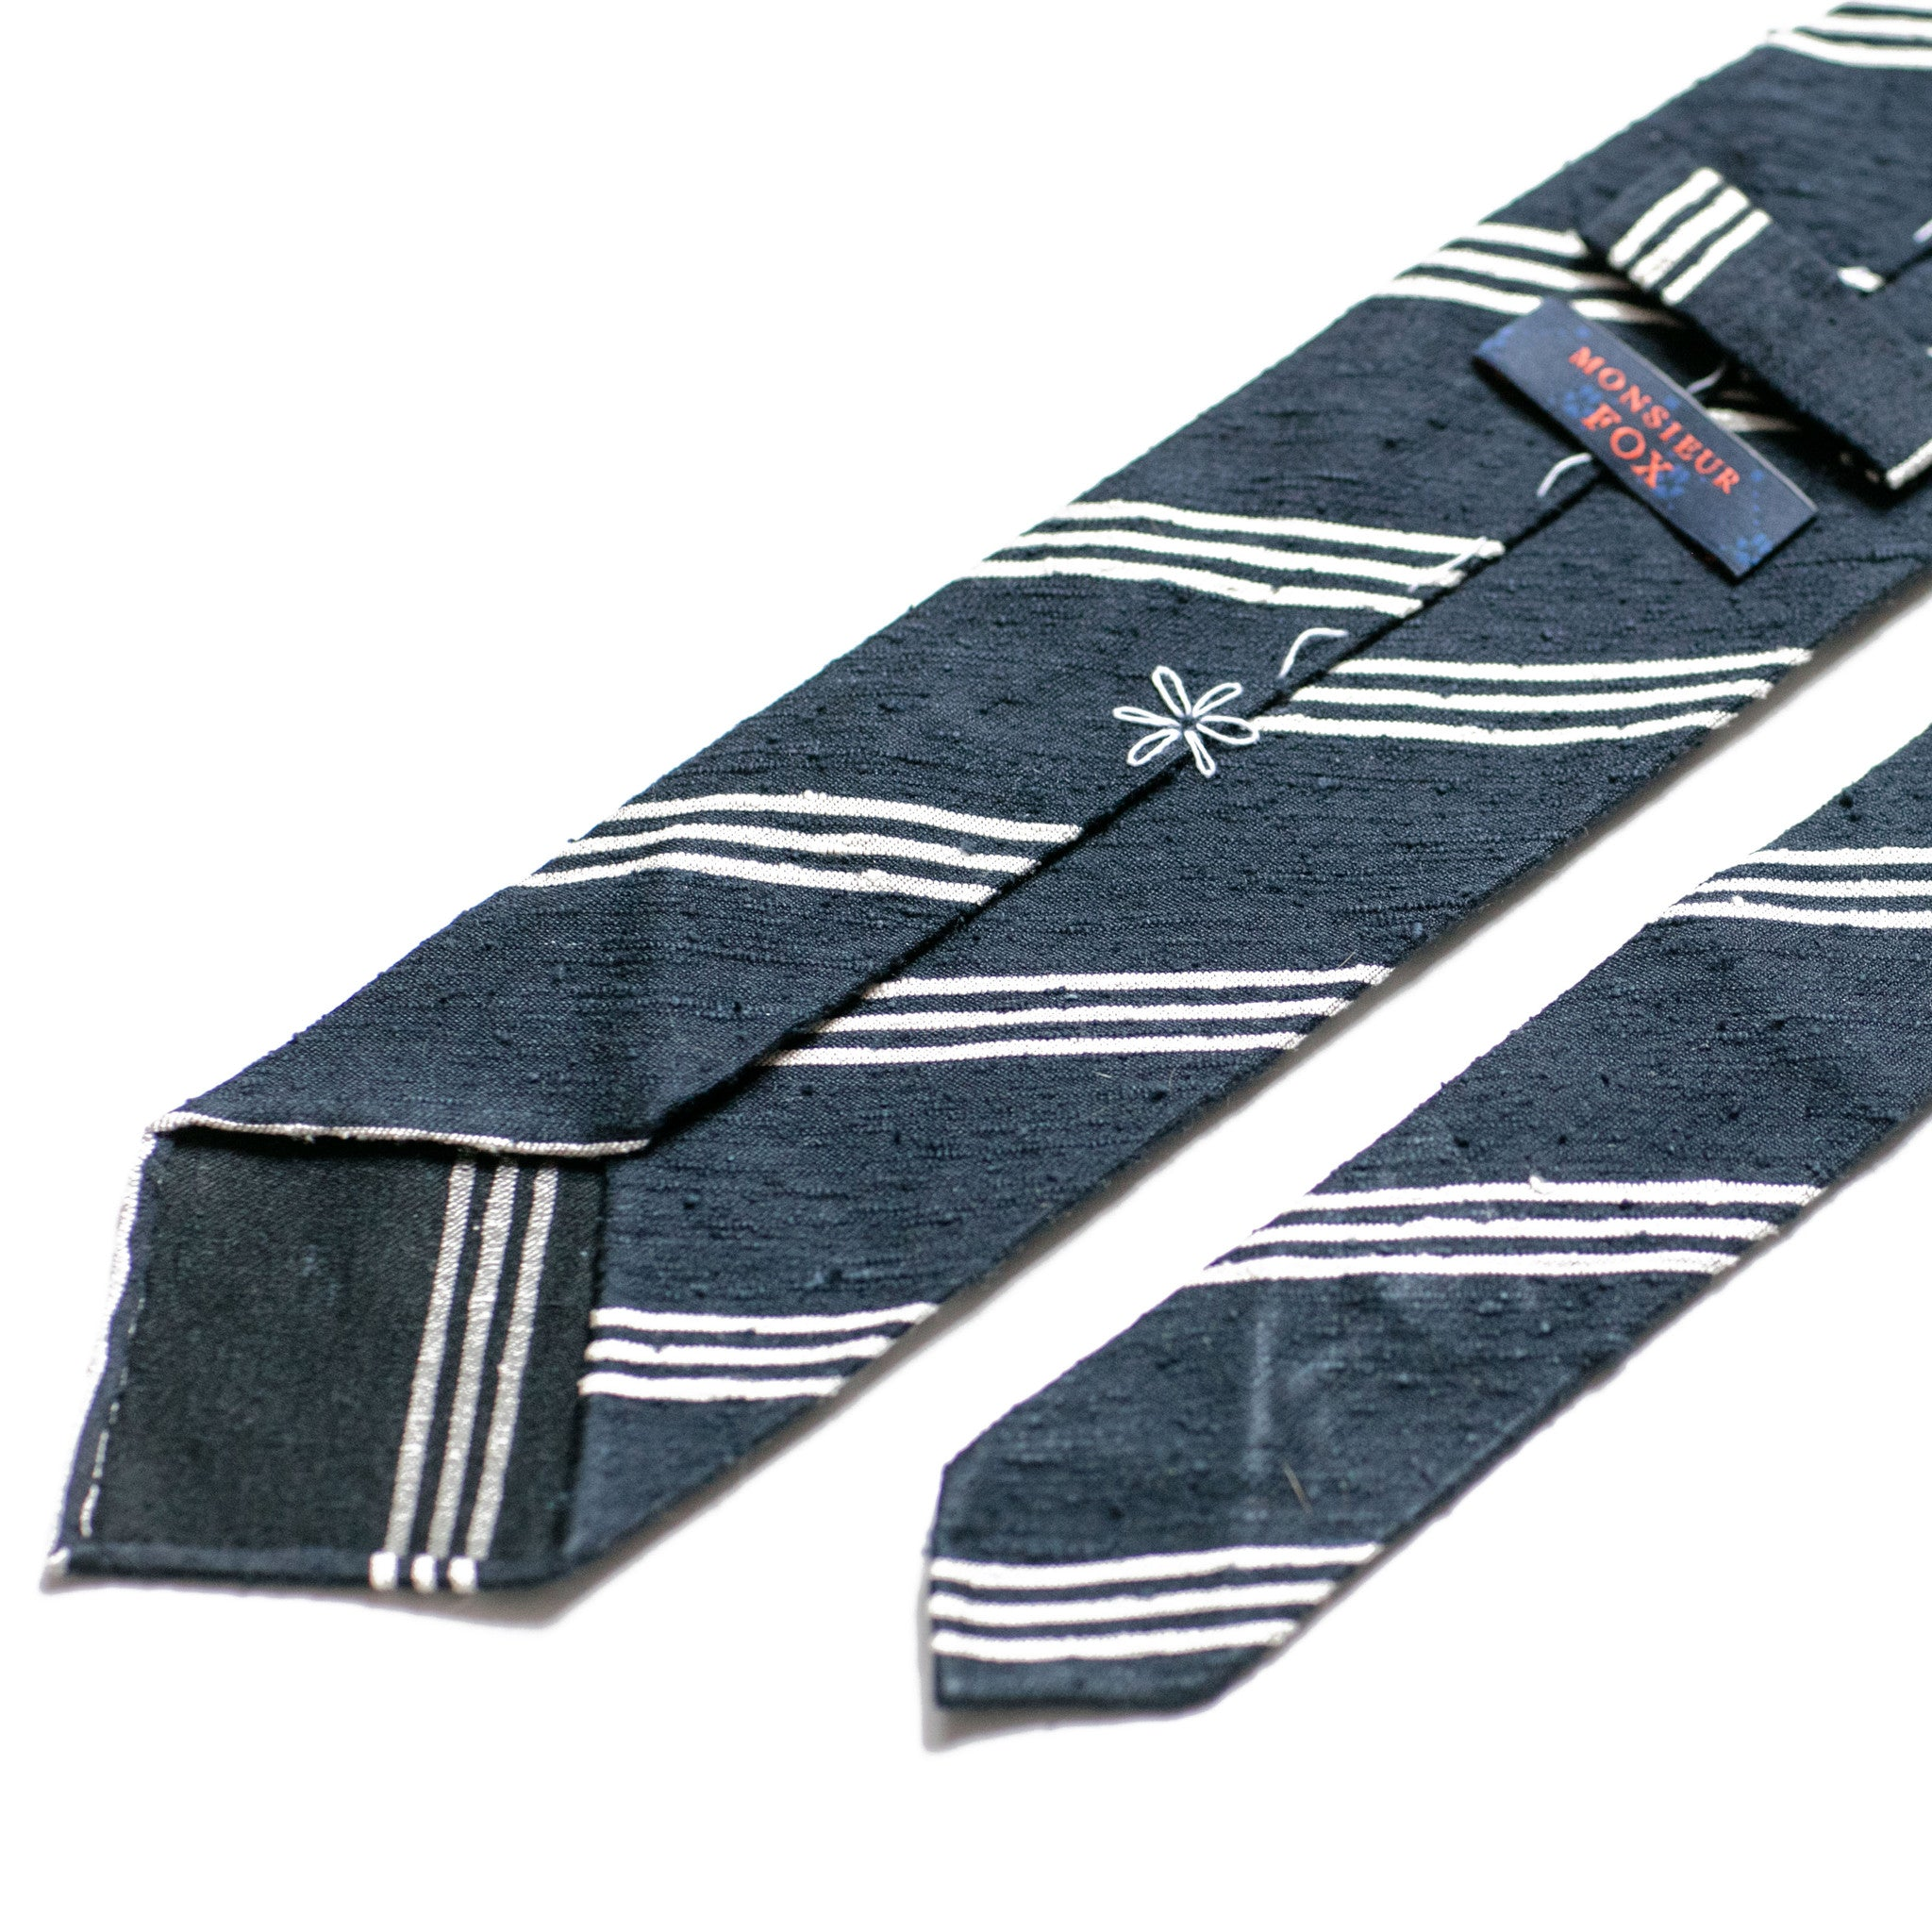 Striped Shantung - Navy and White Stripes